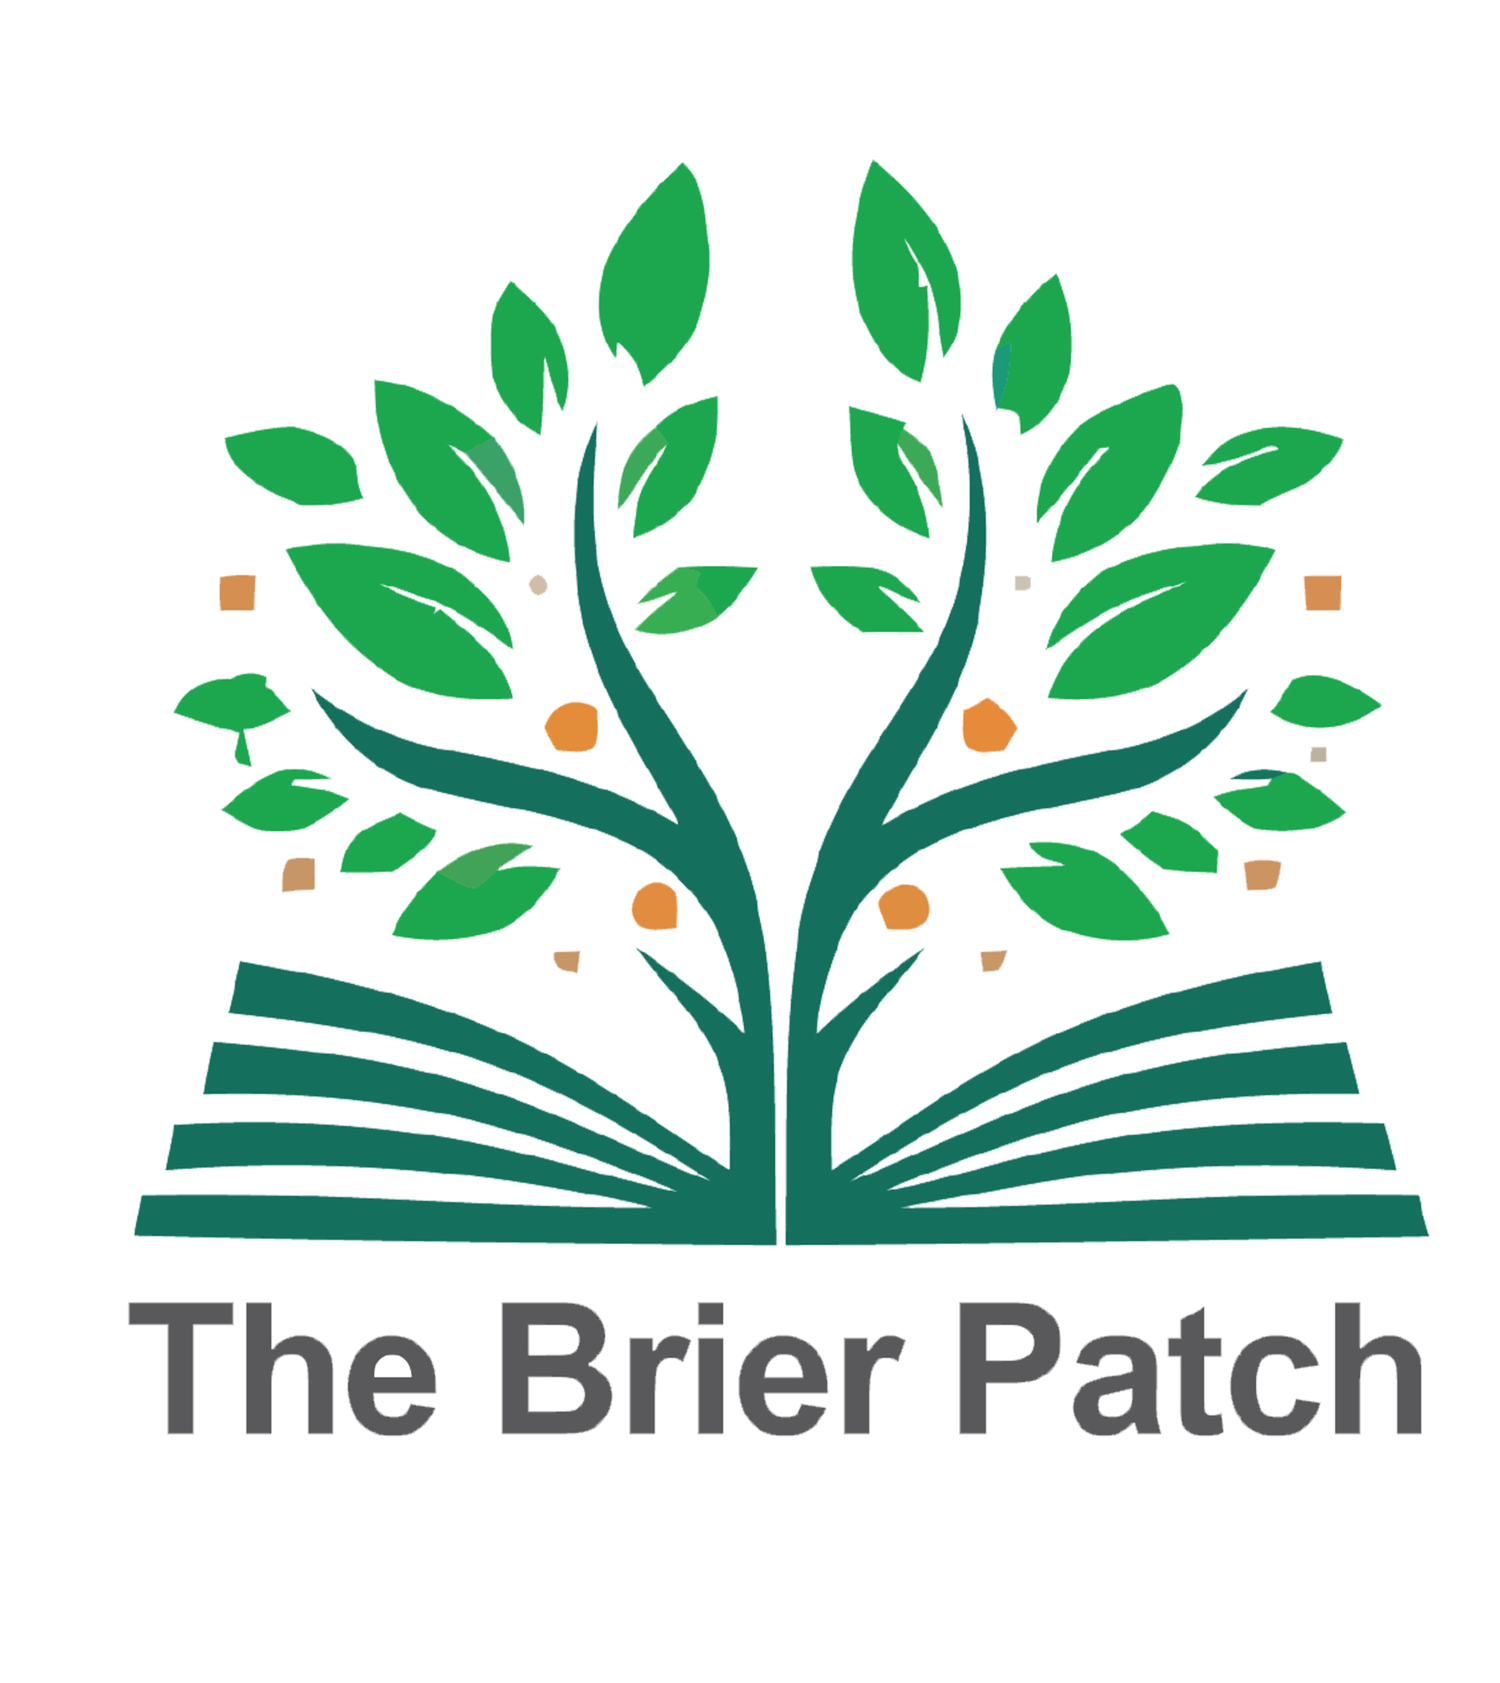 The Brier Patch